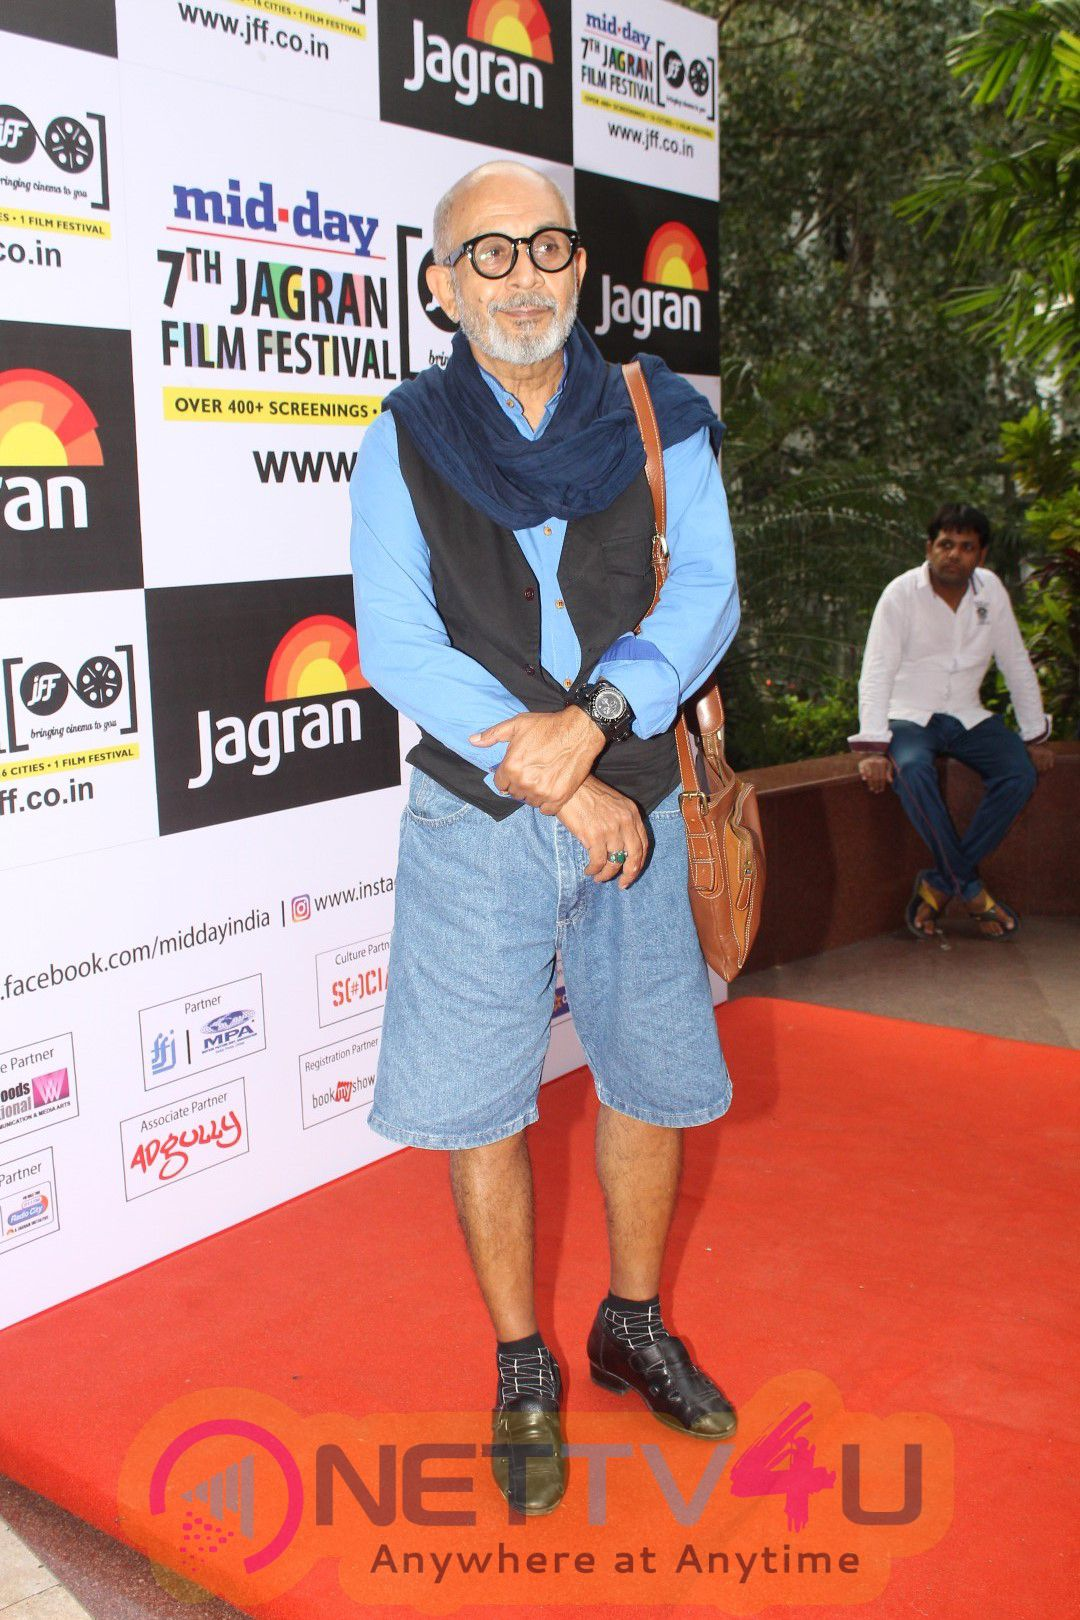 Opening Ceremony Of 7th Jagran Film Festival With Chief Guest Arjun Kapoor Stills